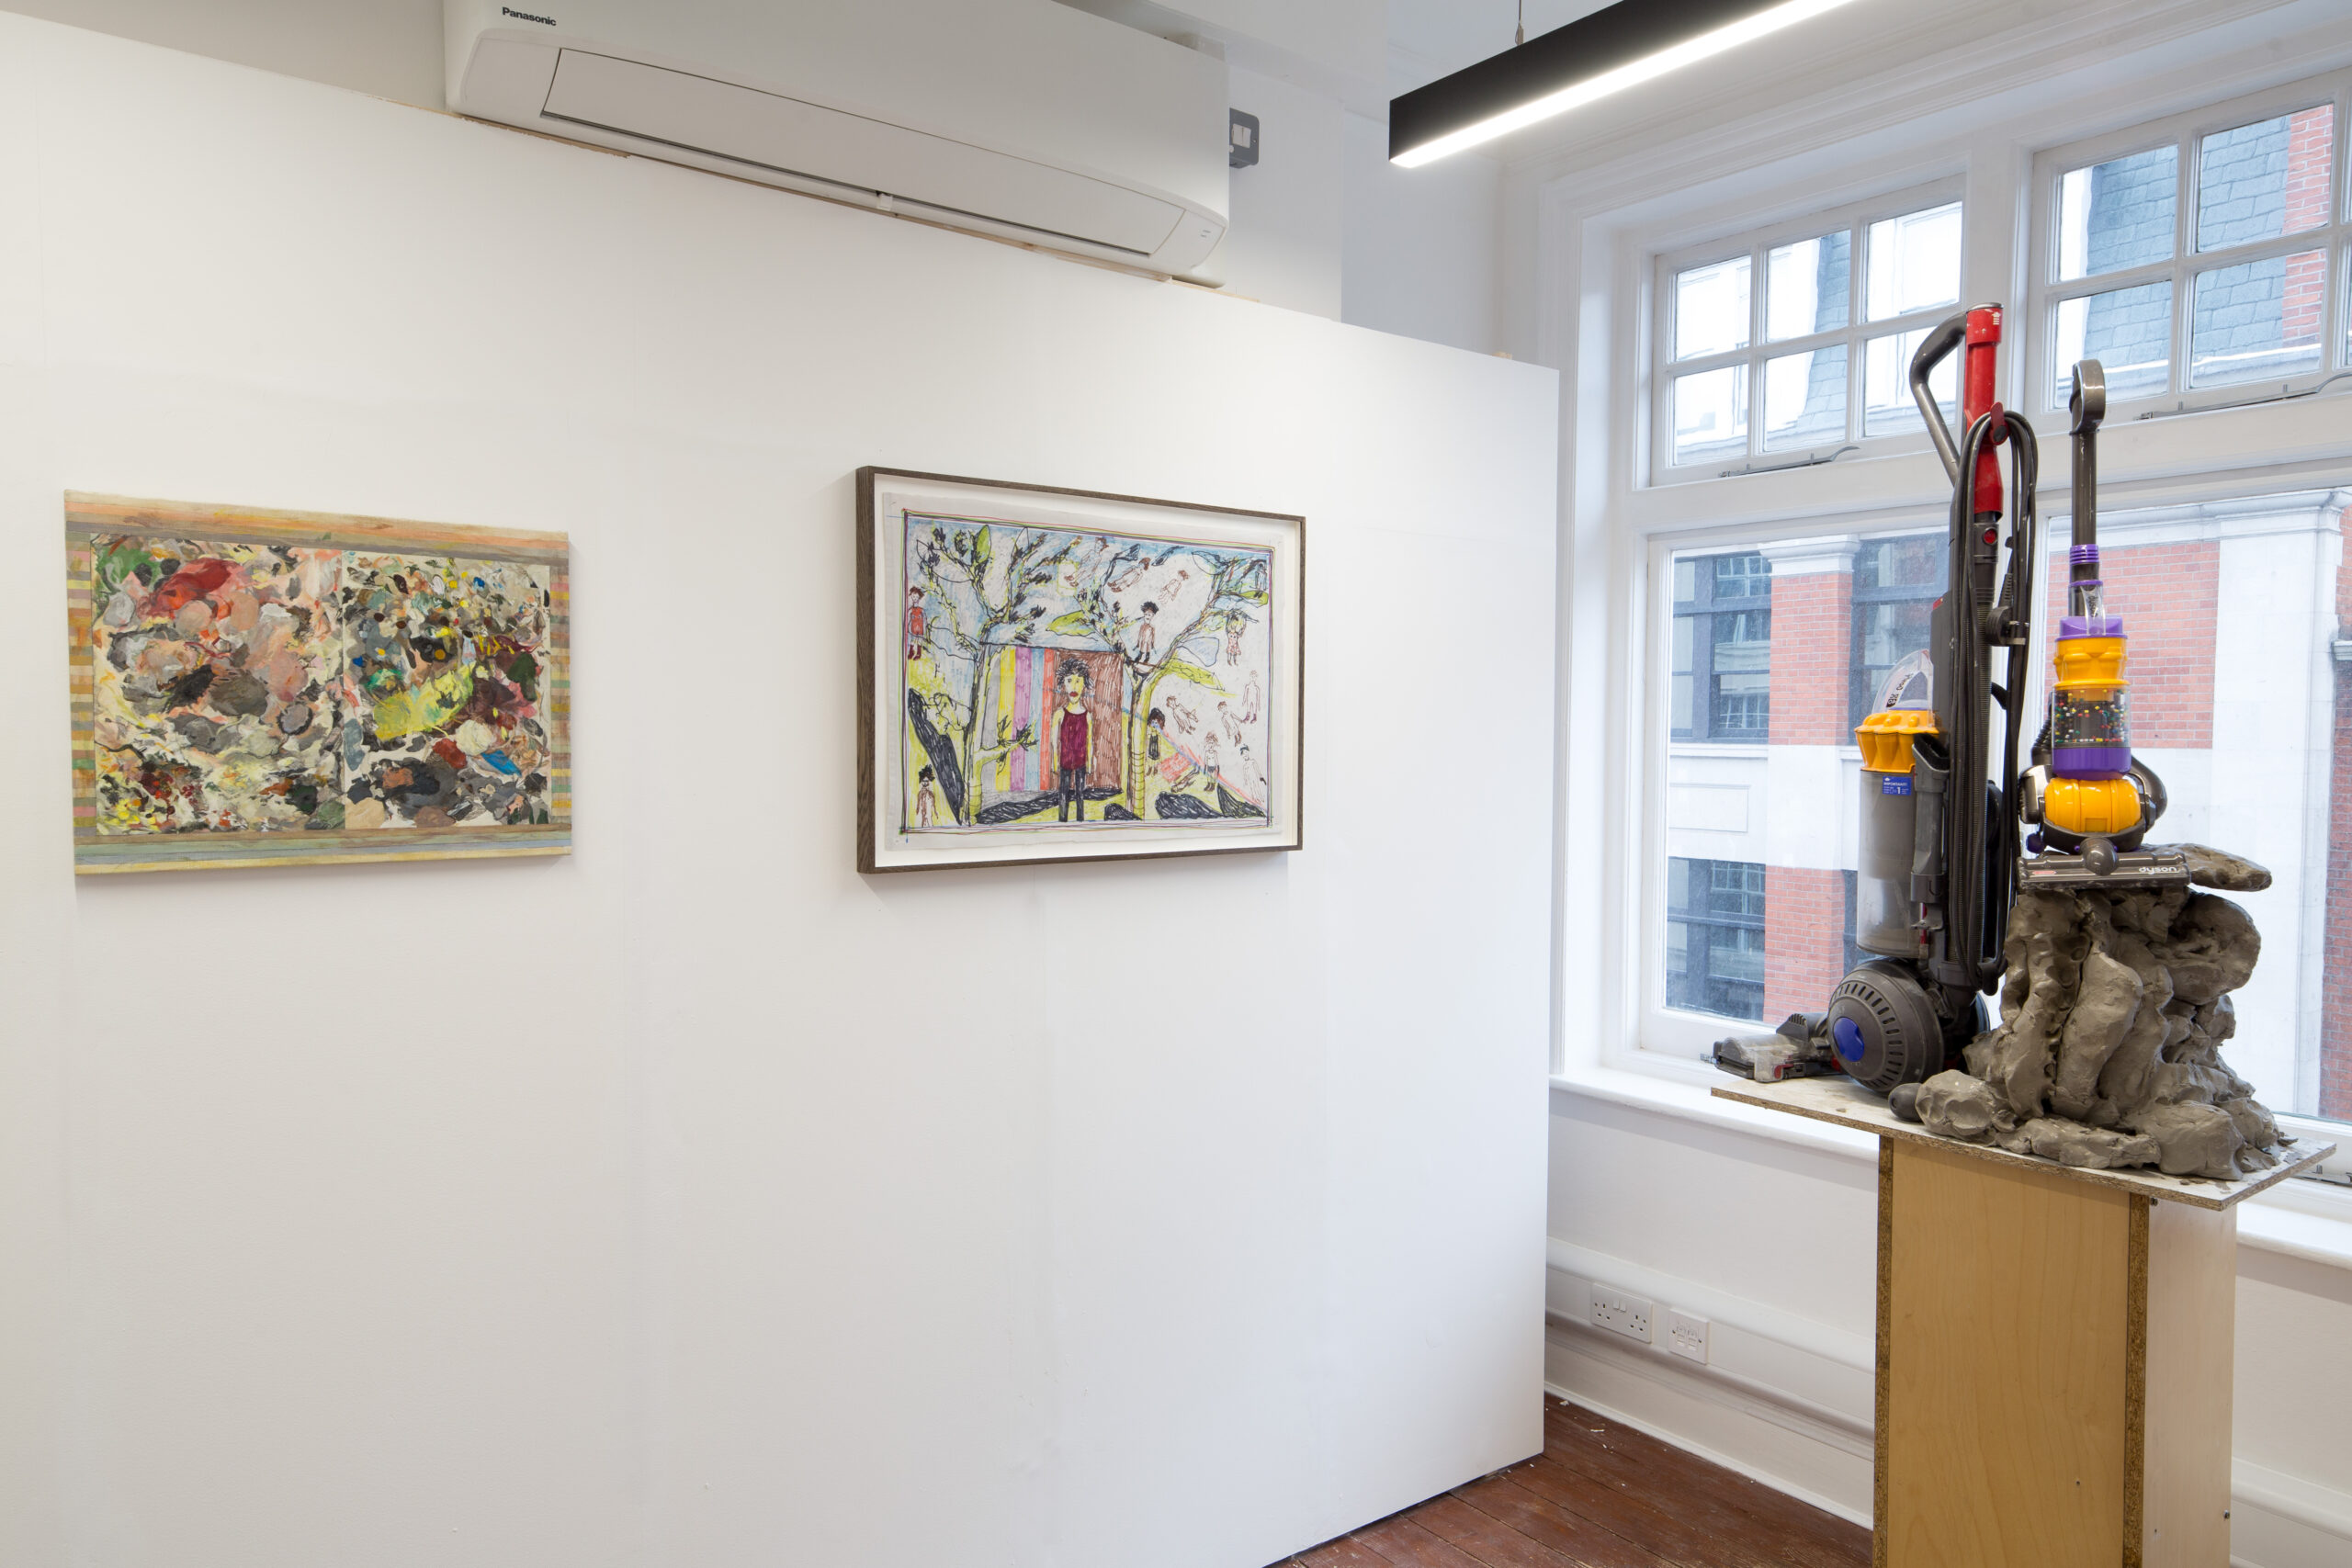 LUNGLEY Gallery moves to Soho, London.